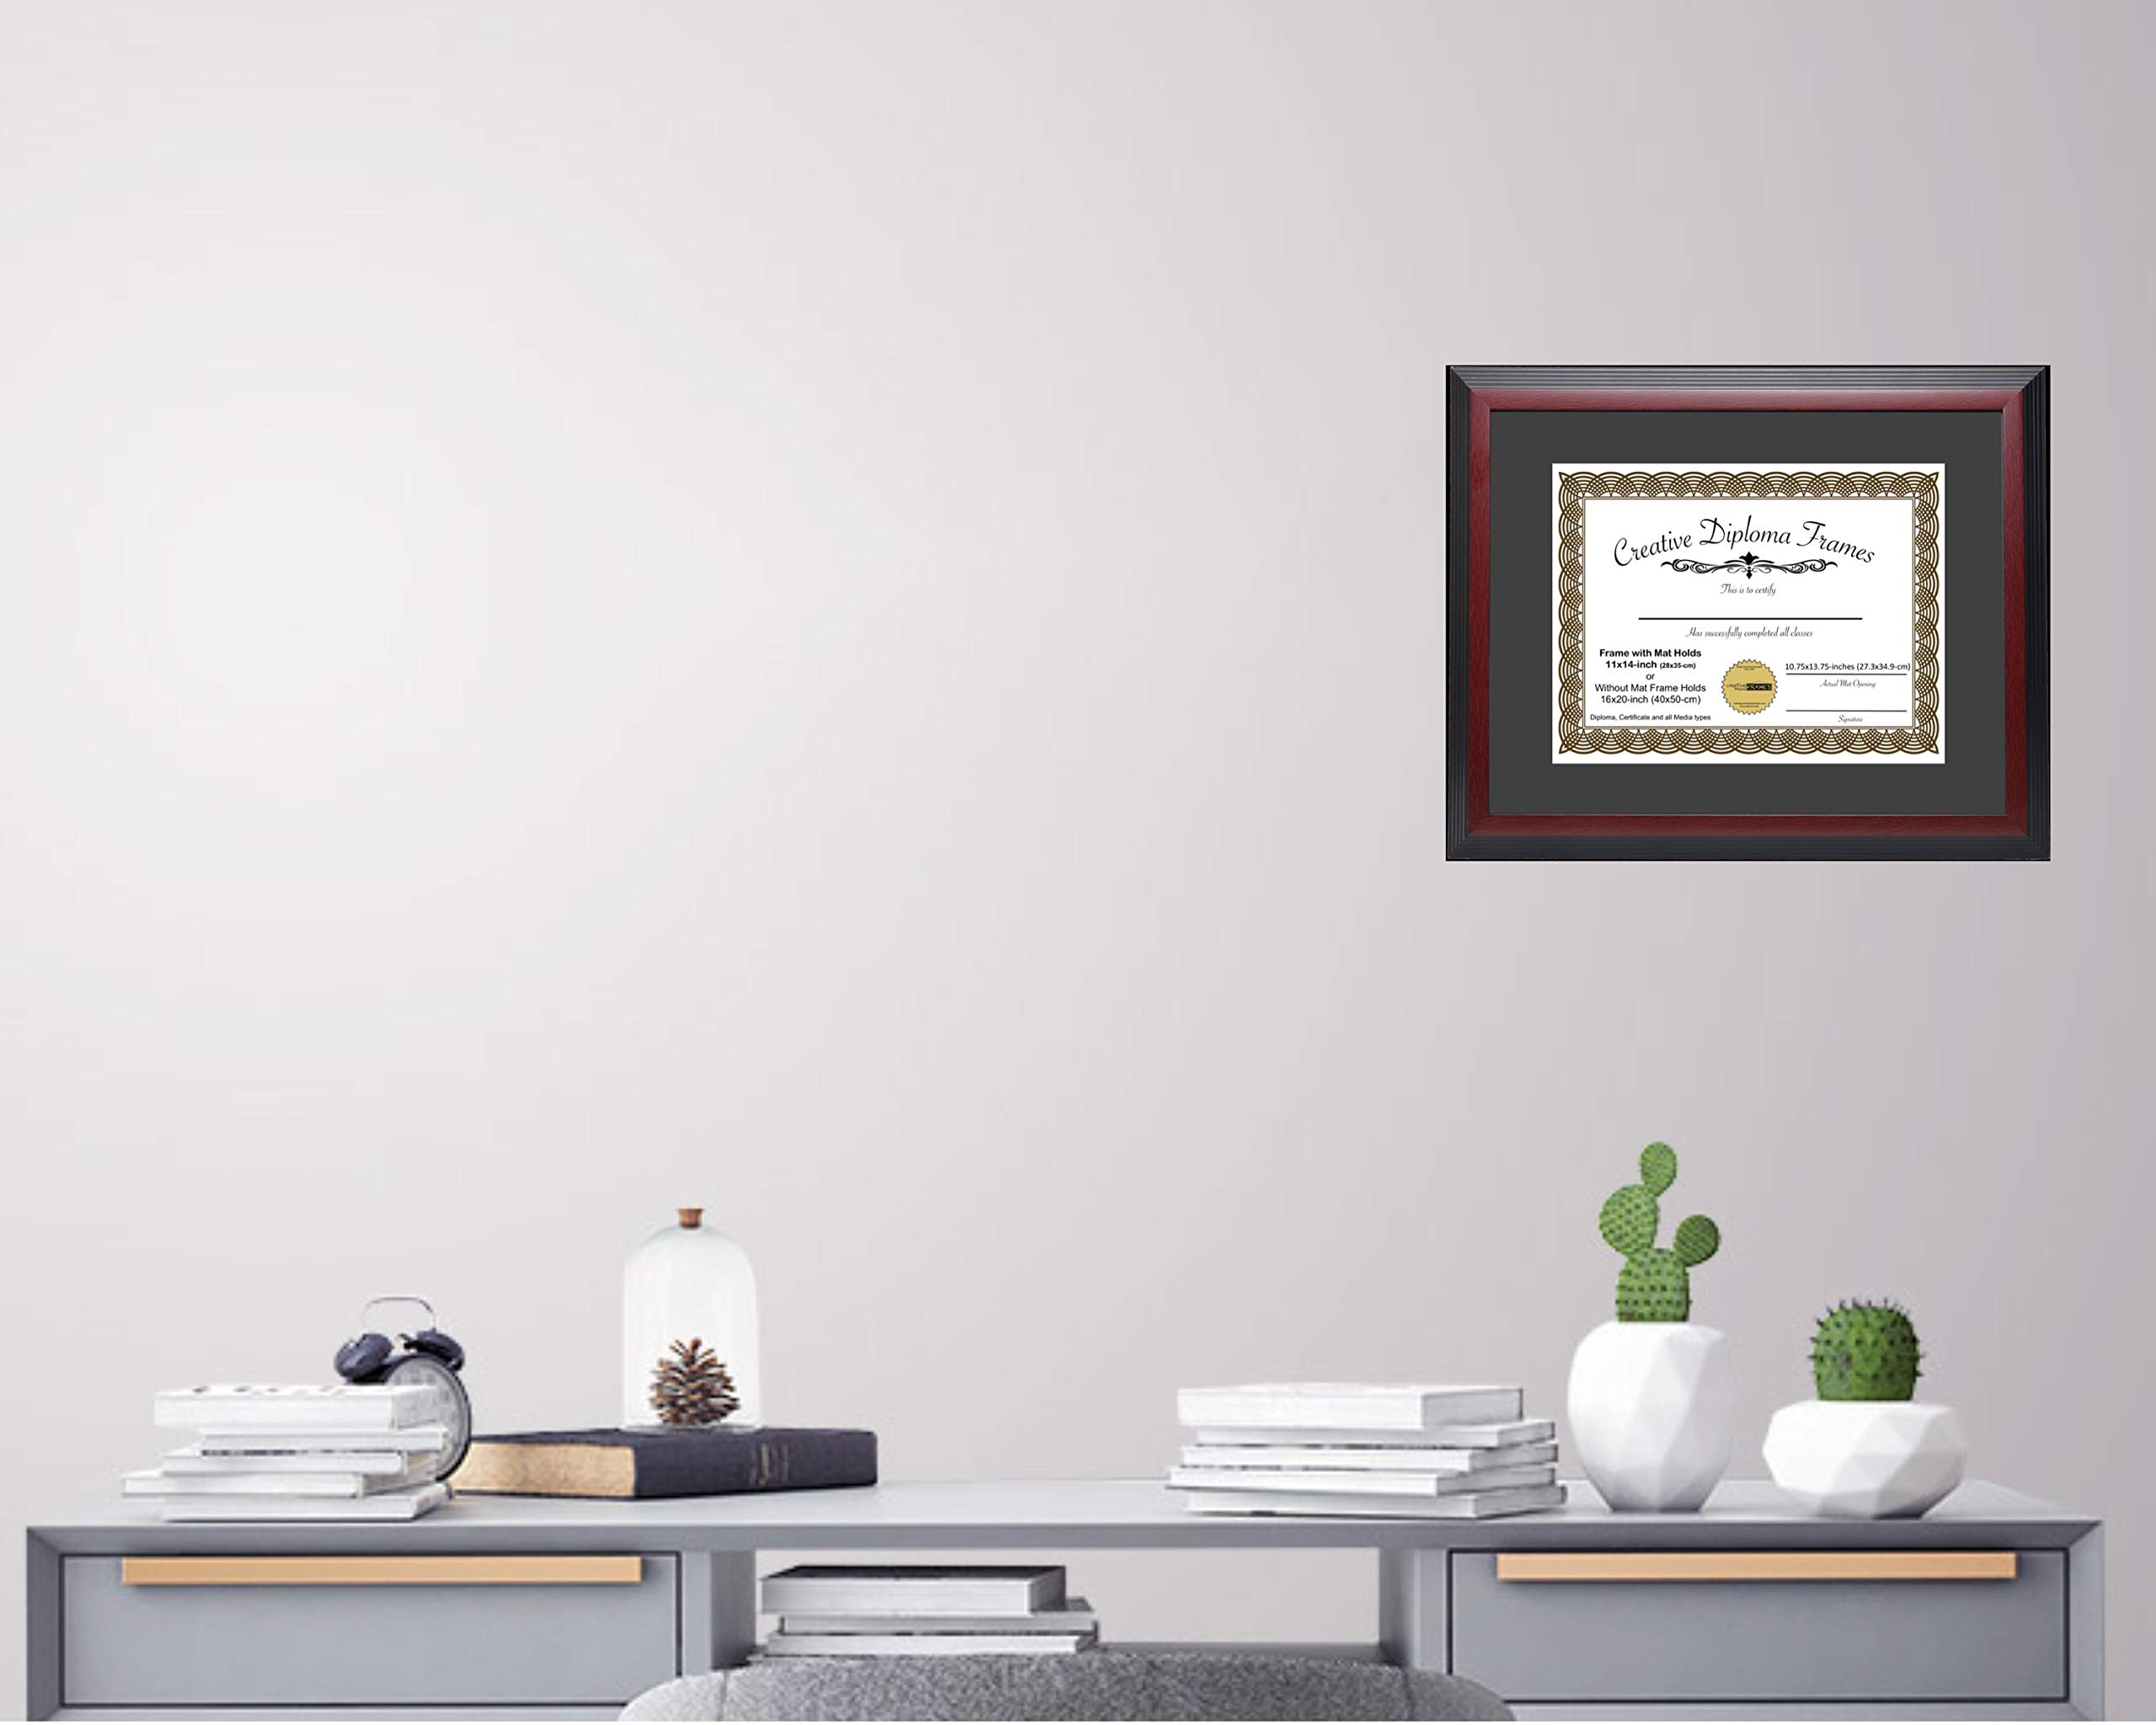 CreativePF [1114-1620mh] Large Mahogany Diploma Frame with Black Mat Holds 11x14-inch Documents with Glass and Installed Wall Hanger by Creative Picture Frames (Image #4)